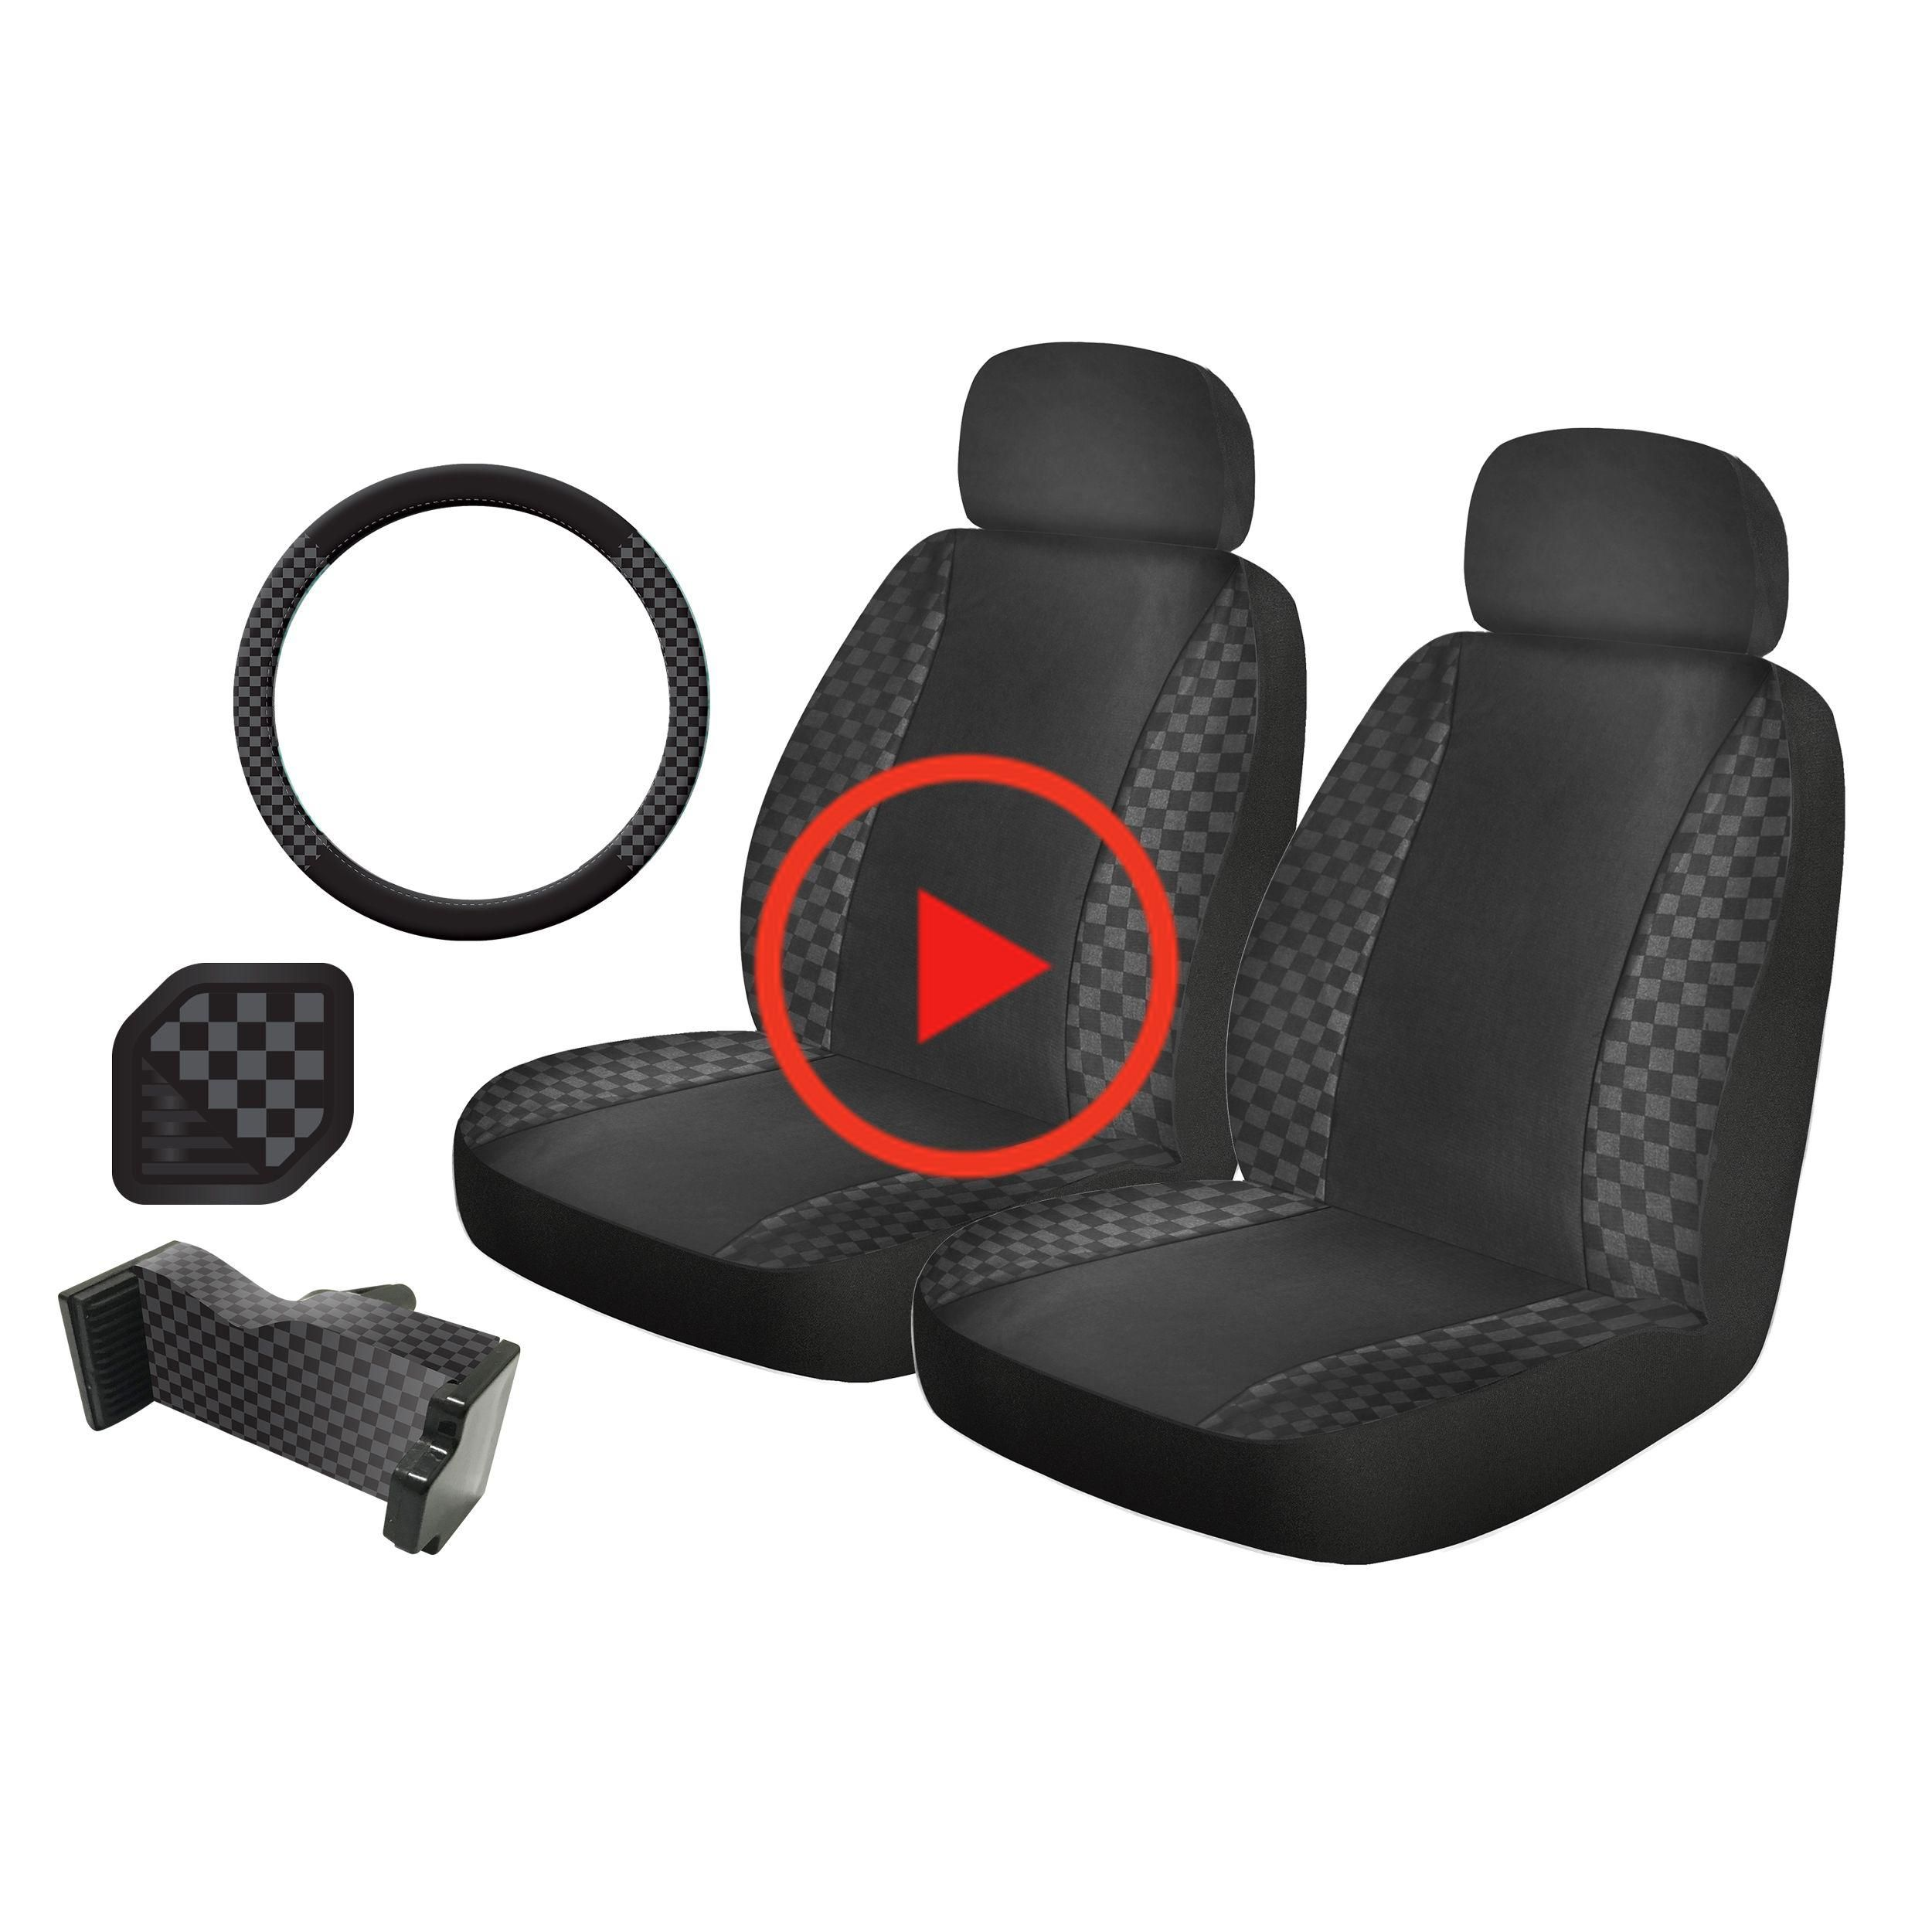 Auto Drive 5Piece Checkers Steering Wheel and Seat Cover